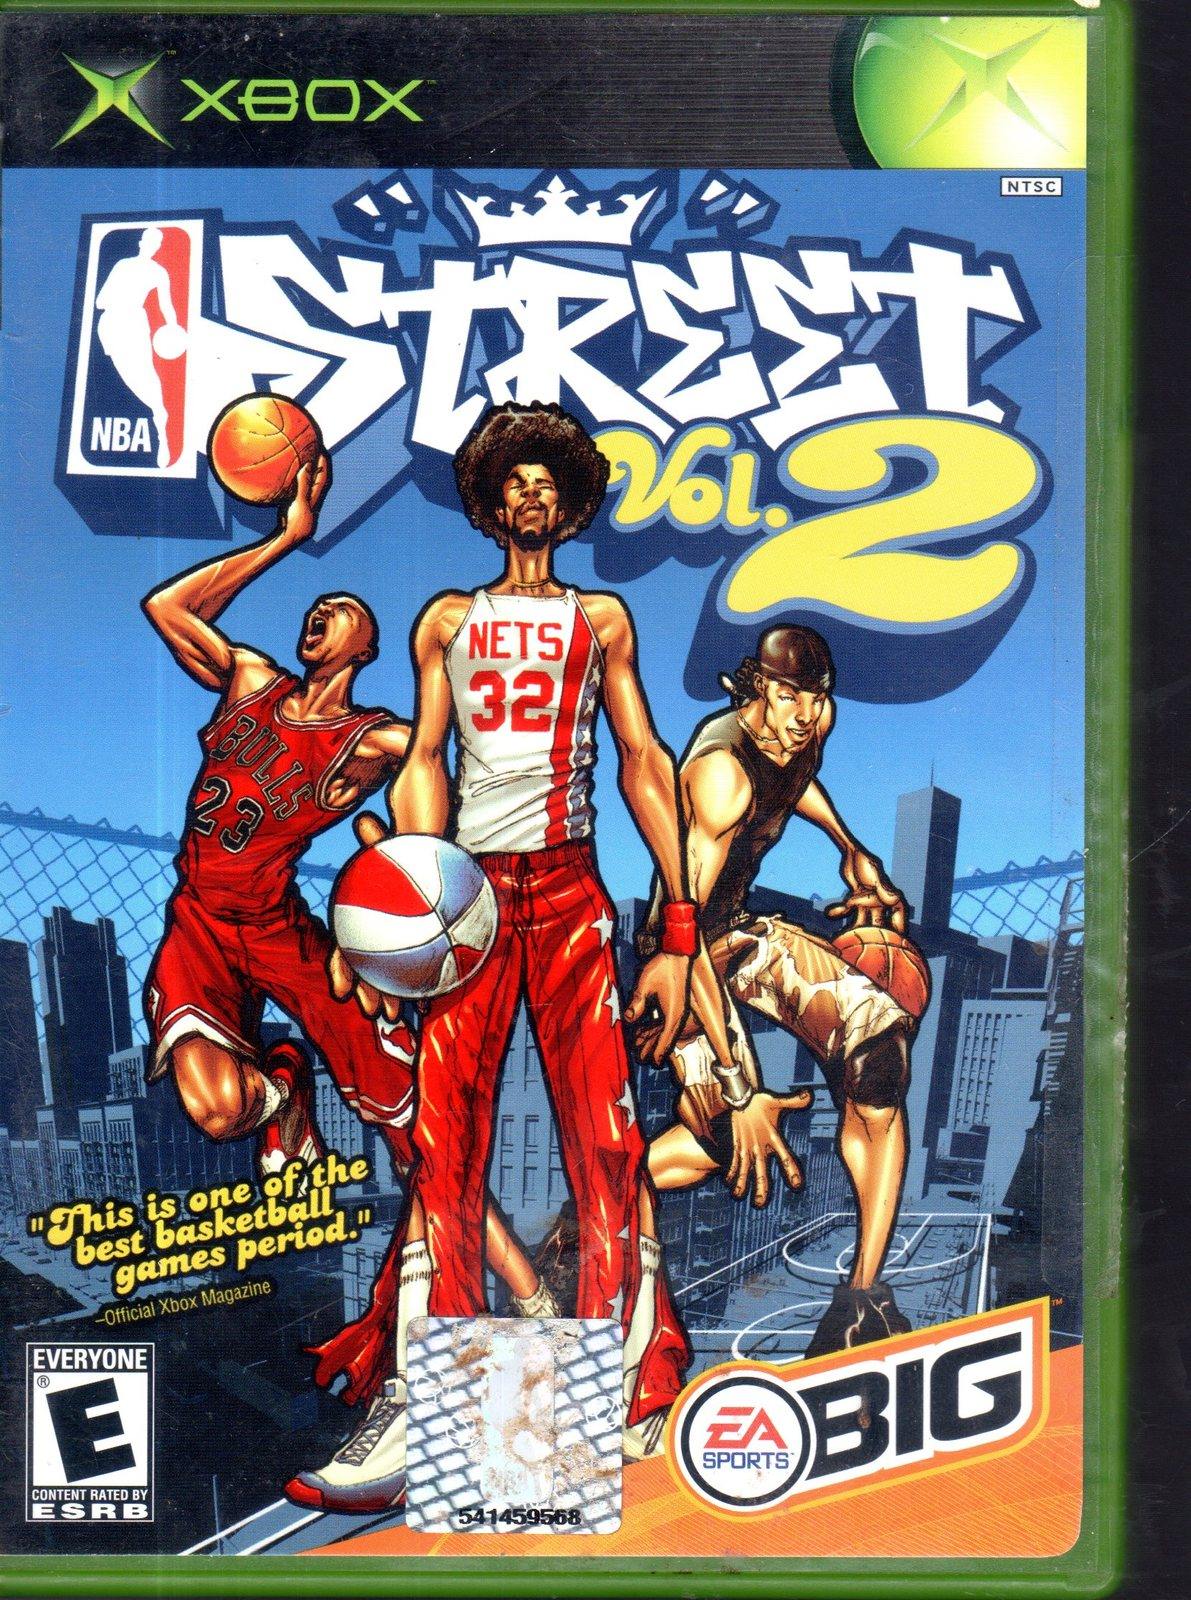 Primary image for NBA Street Vol. 2 (Xbox, 2003)